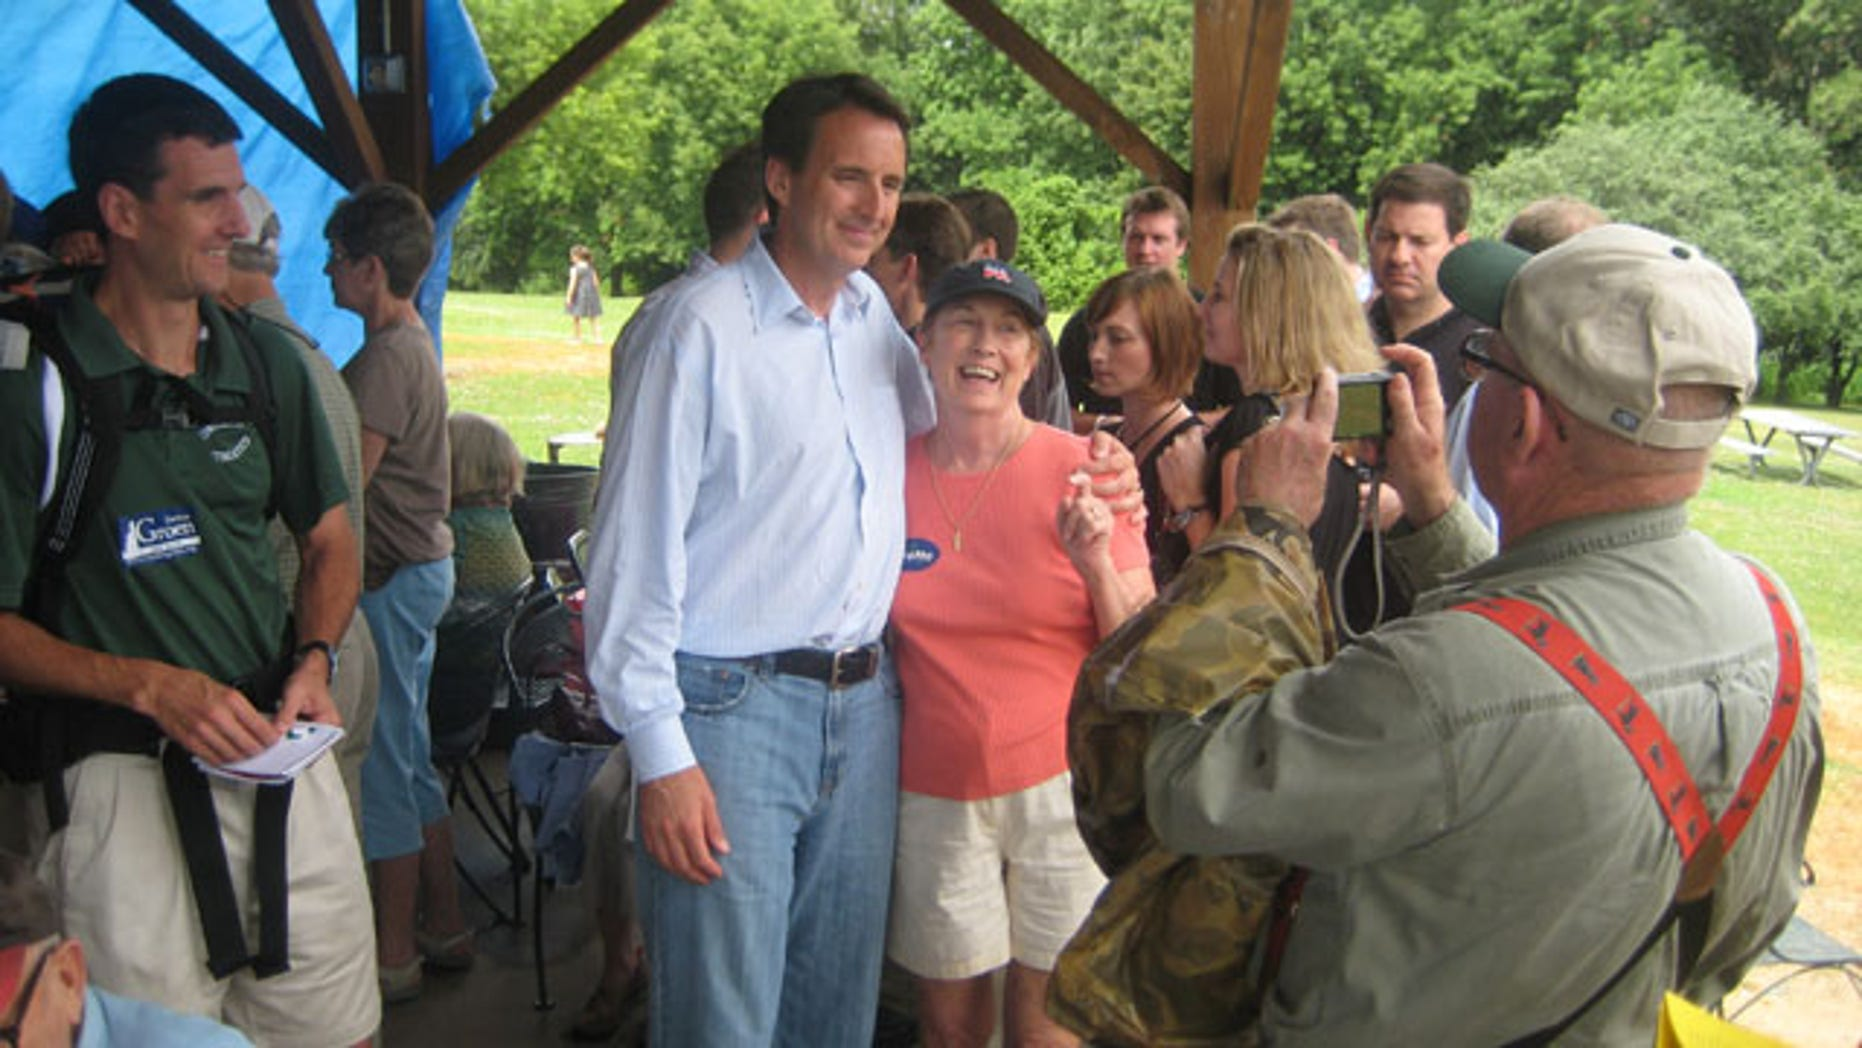 Minnesota Gov. Tim Pawlenty is shown posing for pictures at the Strafford County GOP picnic in New Hampshire on July 10. (FNC)